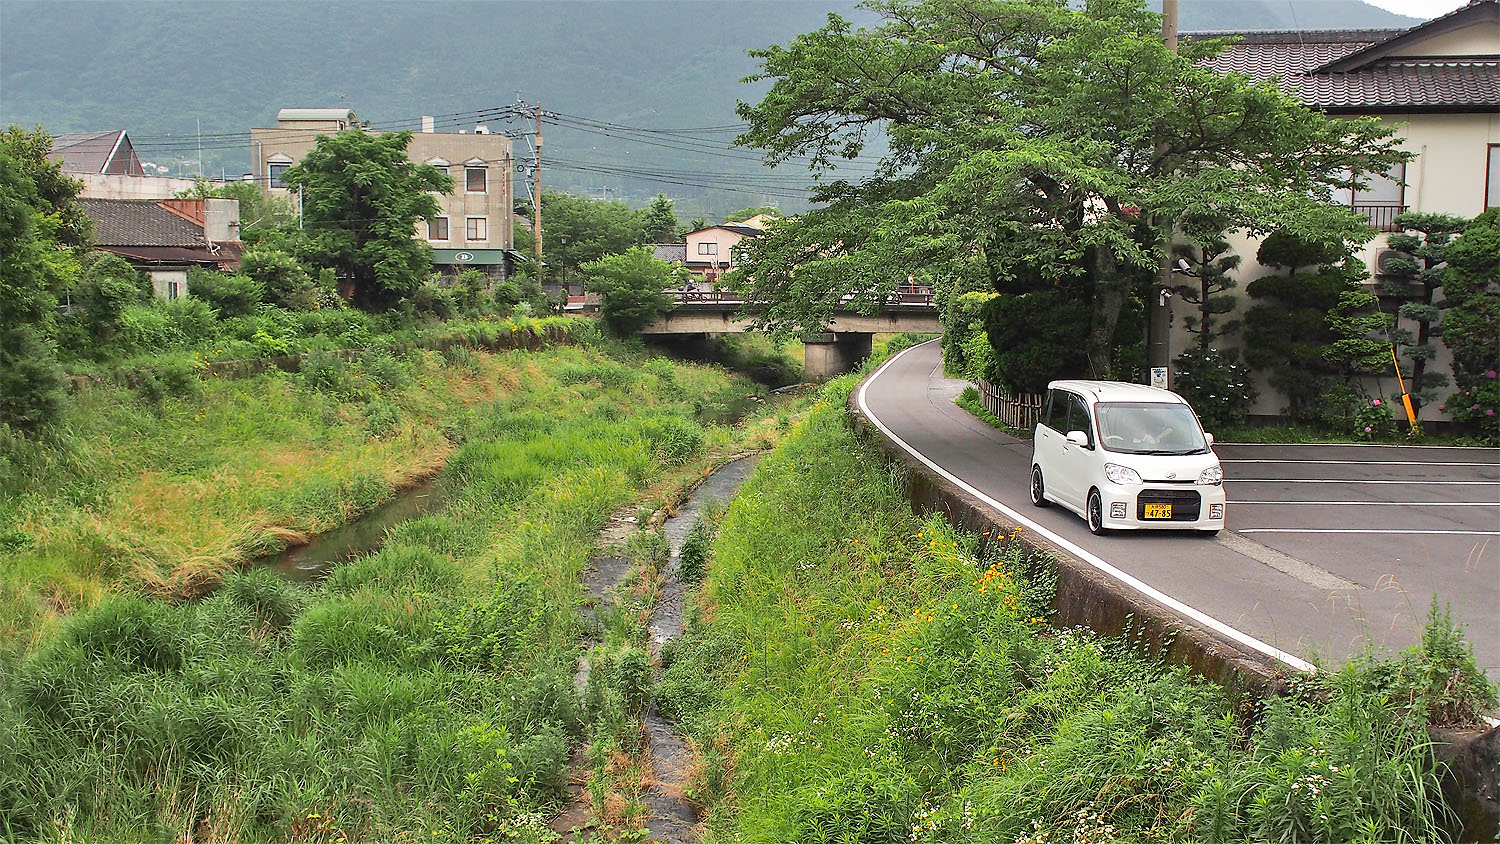 Driving in Yufuin